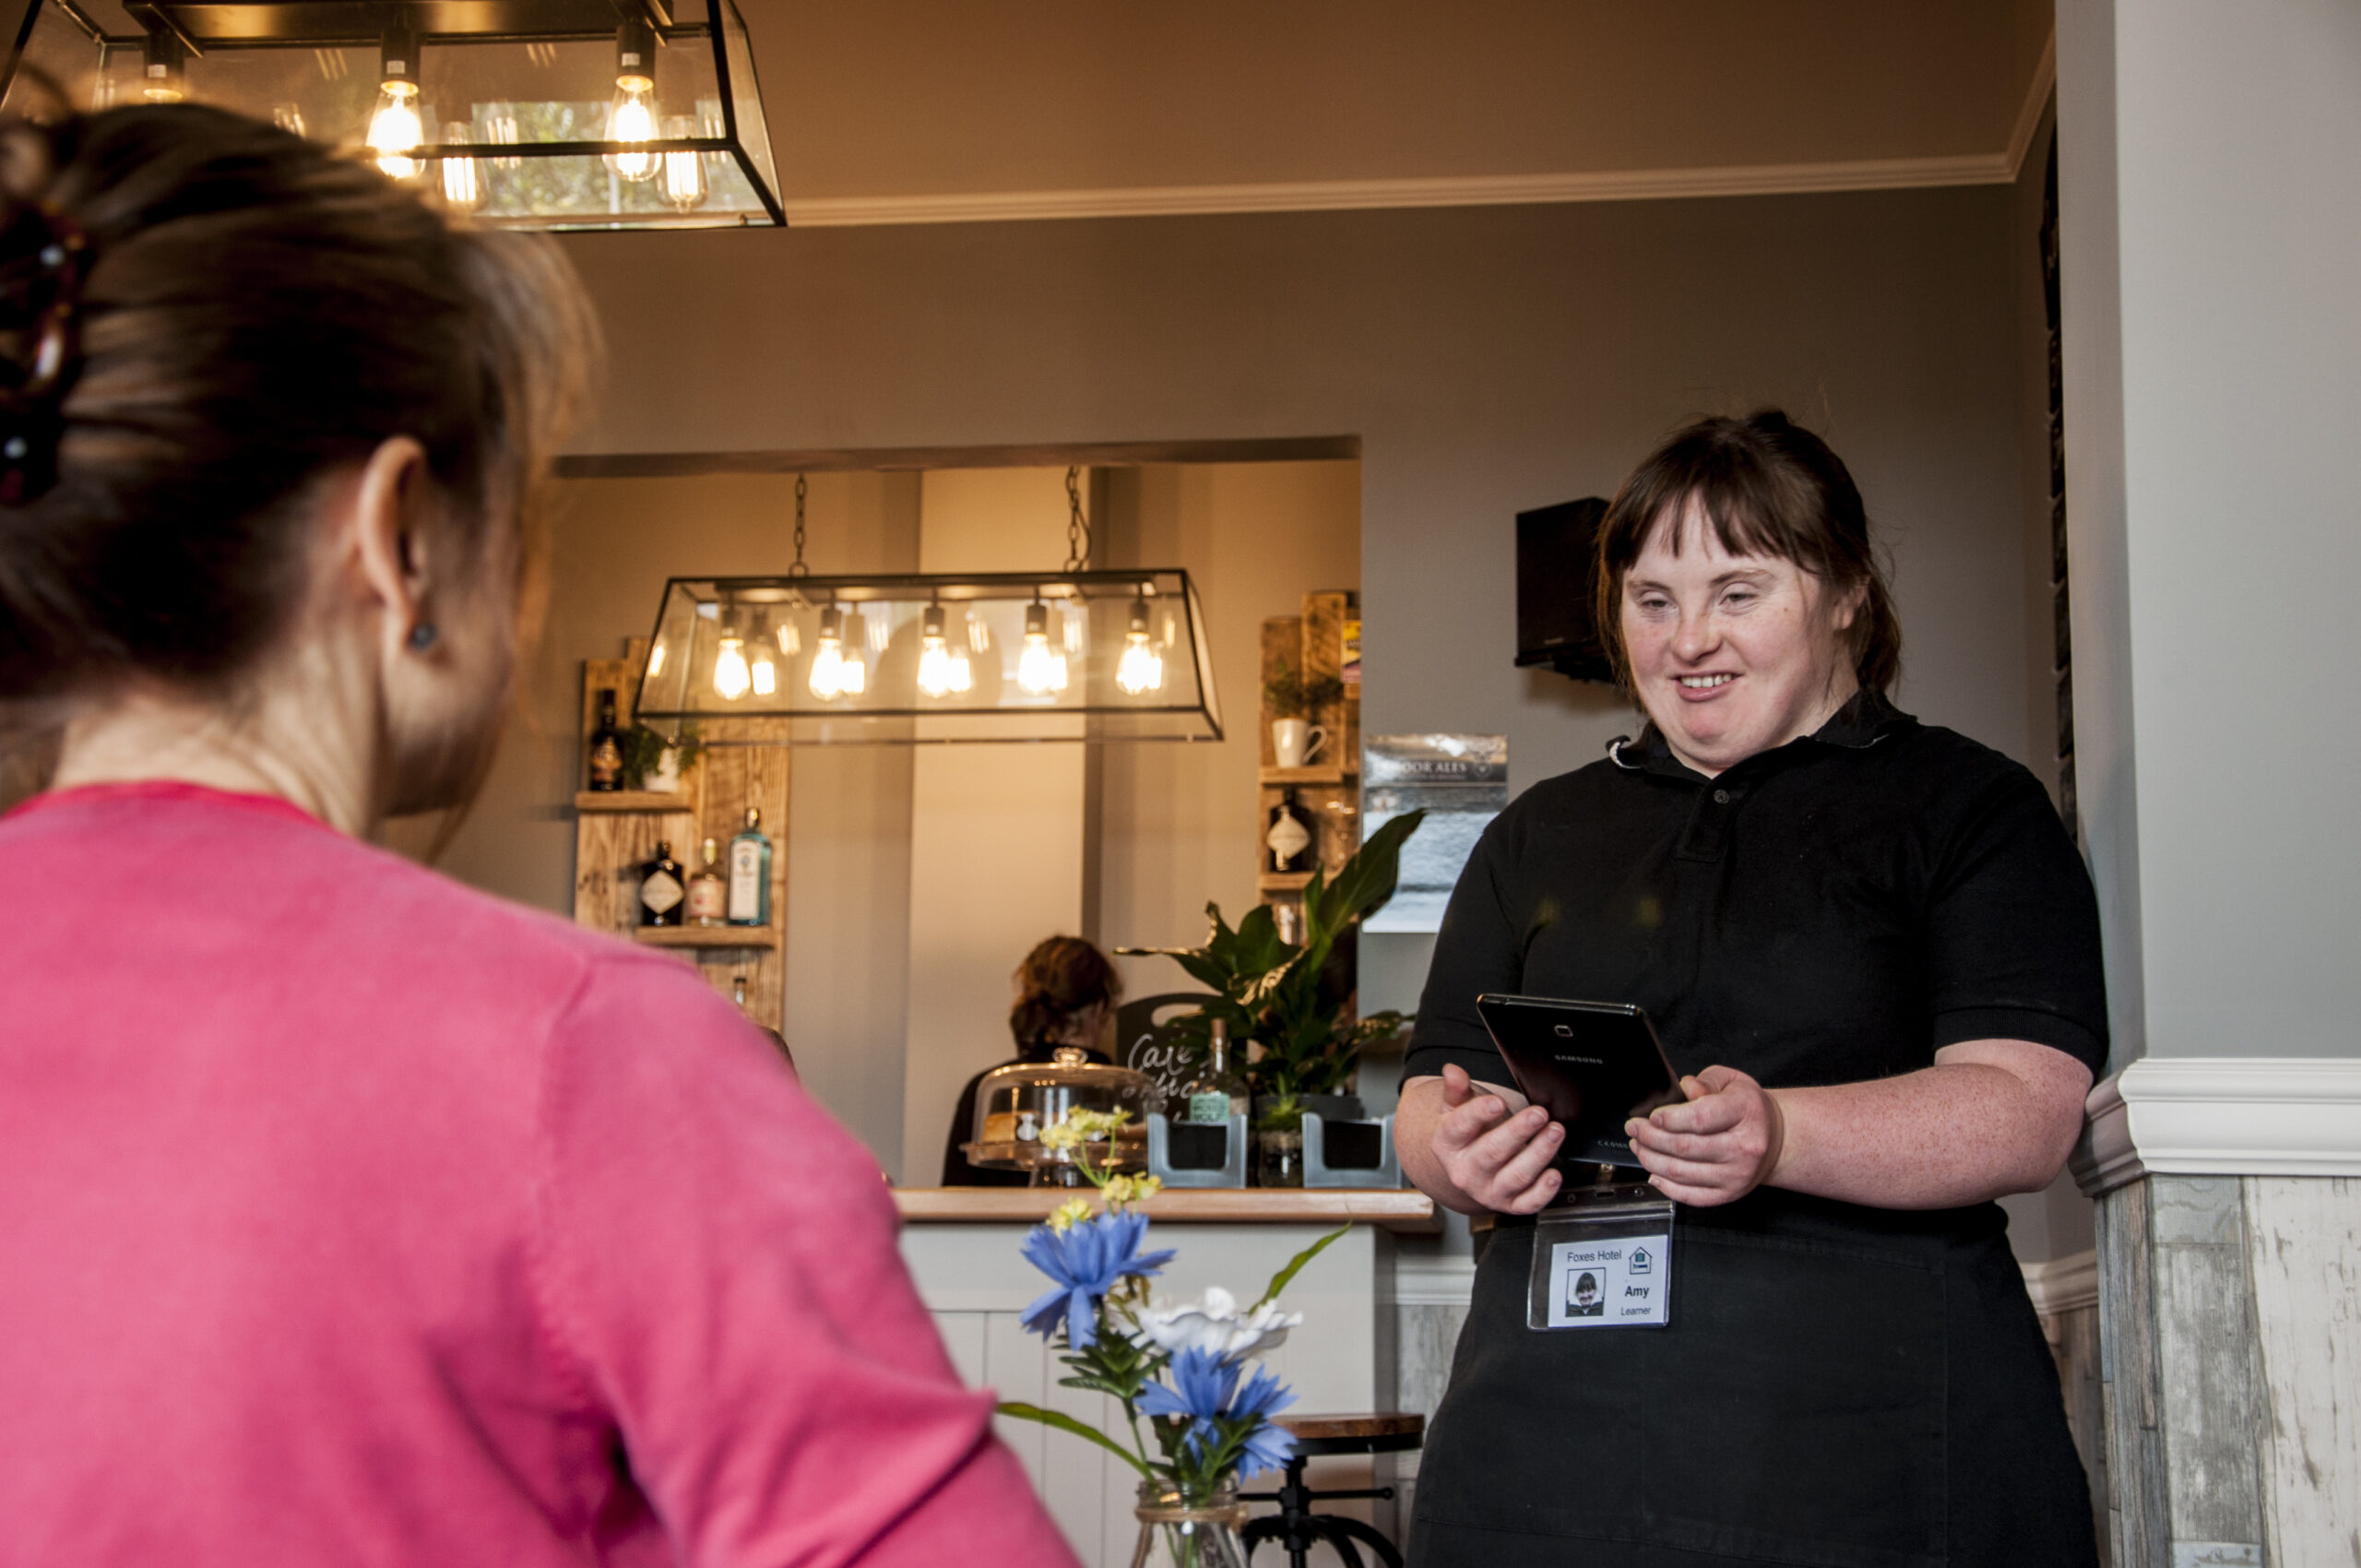 Amy, a student at Foxes, takes an order in Foxes' hotel restaurant on a tablet. She is smartly dressed in her uniform